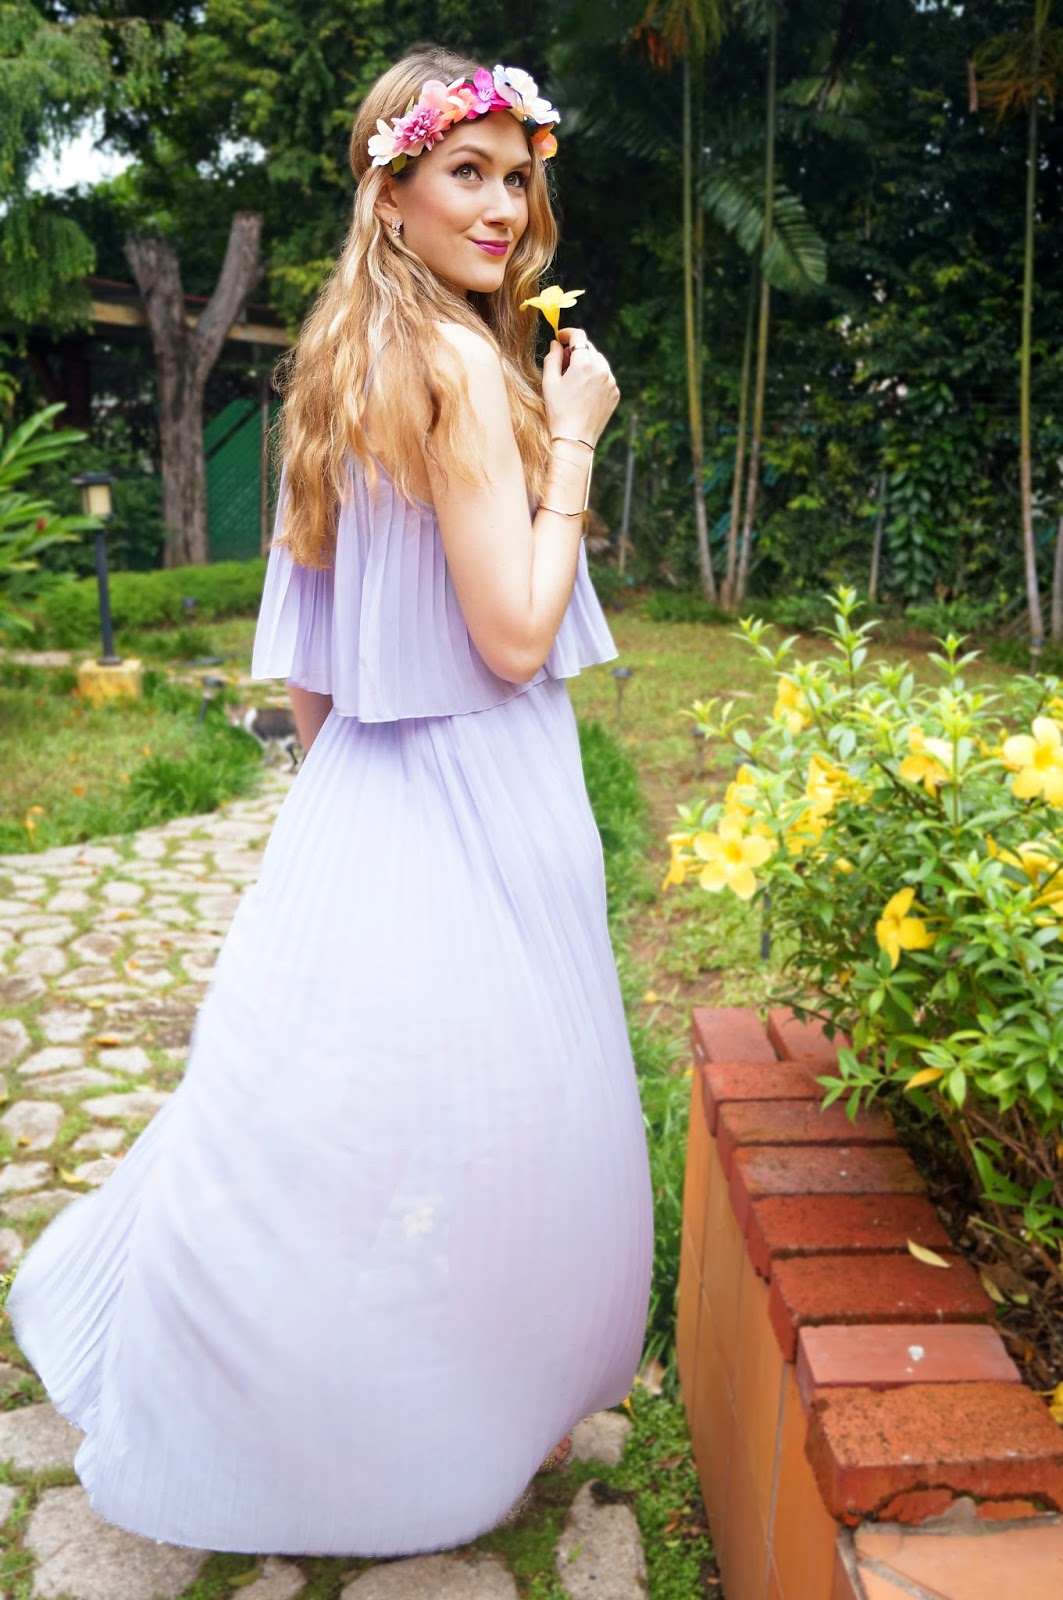 Super Pretty Lavender dress!